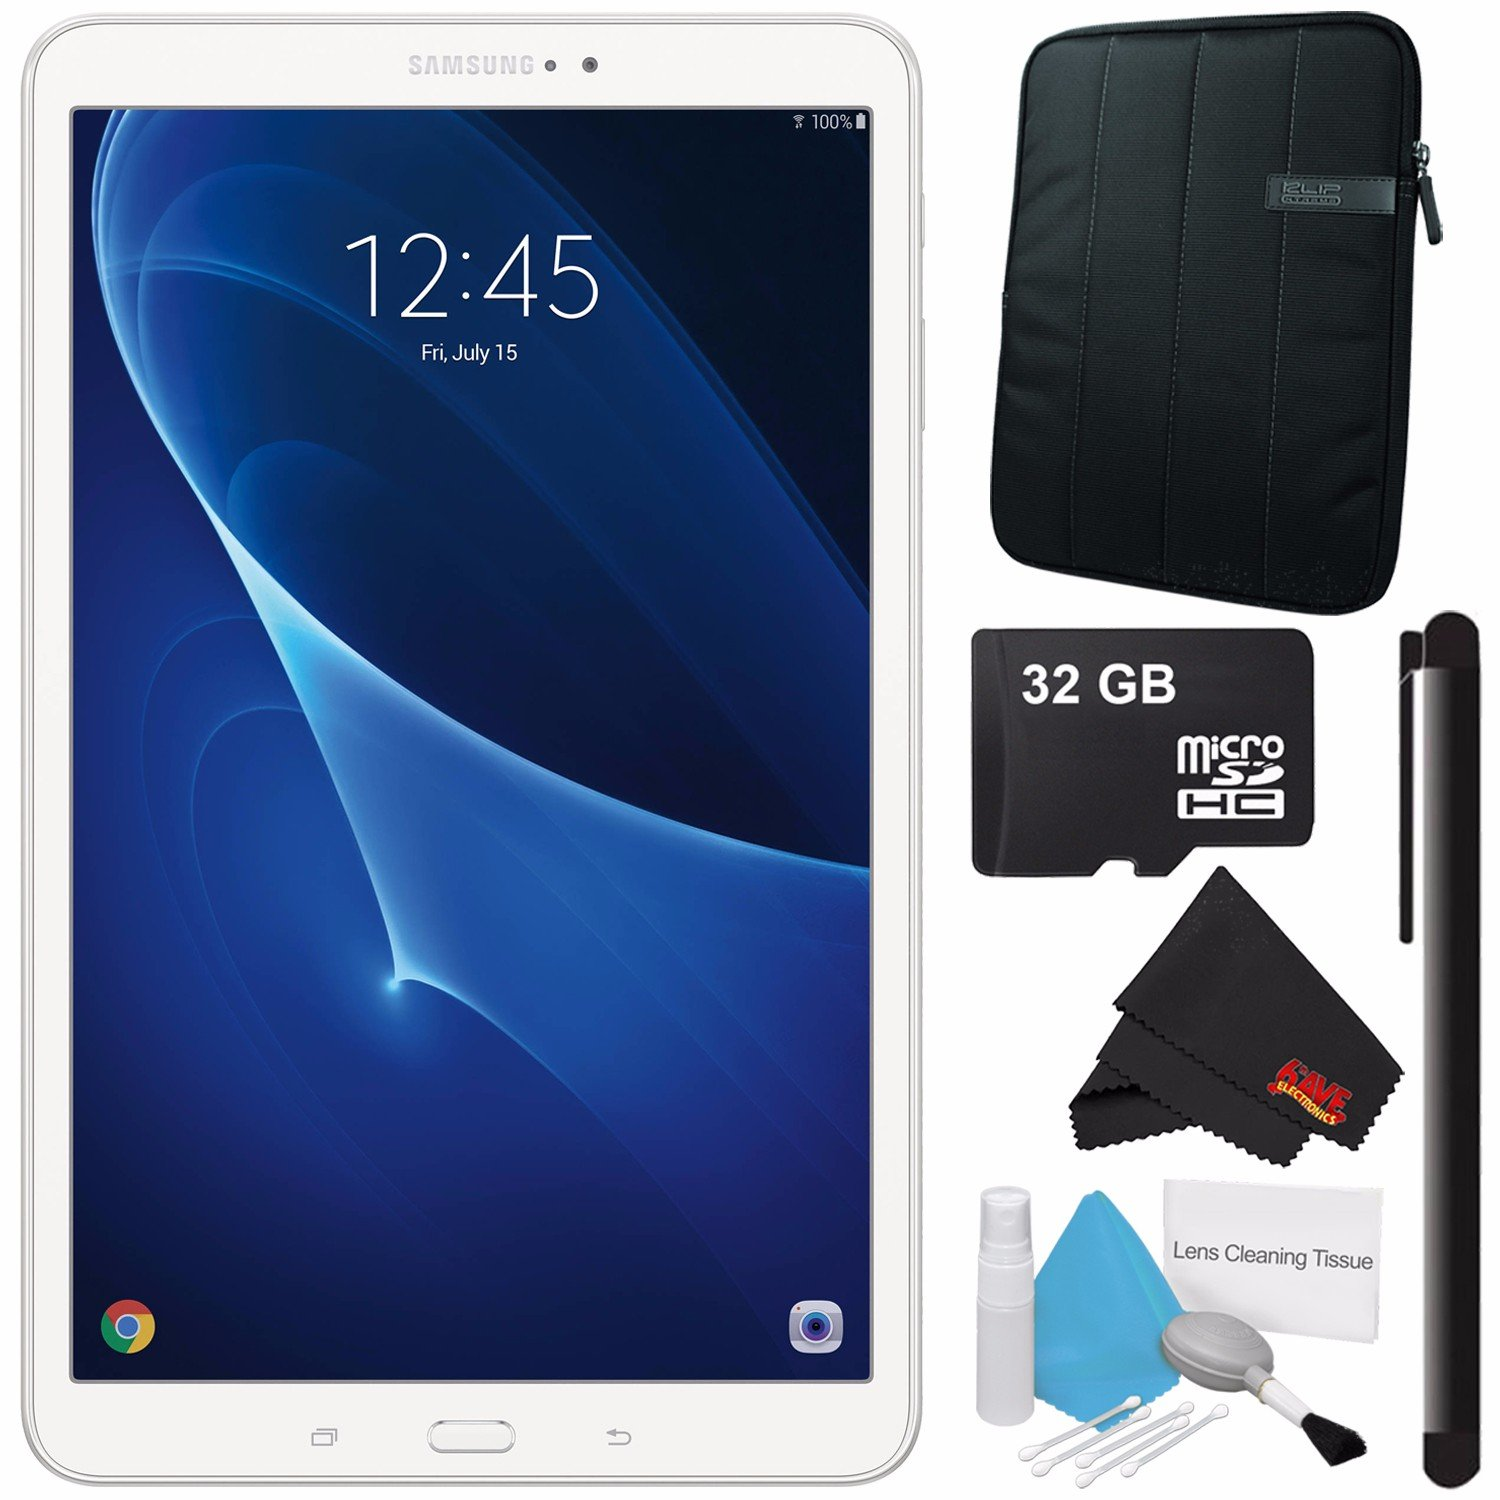 Samsung 10.1'' Galaxy Tab A T580 16GB Tablet (Wi-Fi Only, White) SM-T580NZWAXAR + Universal Stylus for Tablets + Tablet Neoprene Sleeve 10.1'' Case (Black) + 32GB Class 10 Micro SD Memory Card Bundle by Samsung